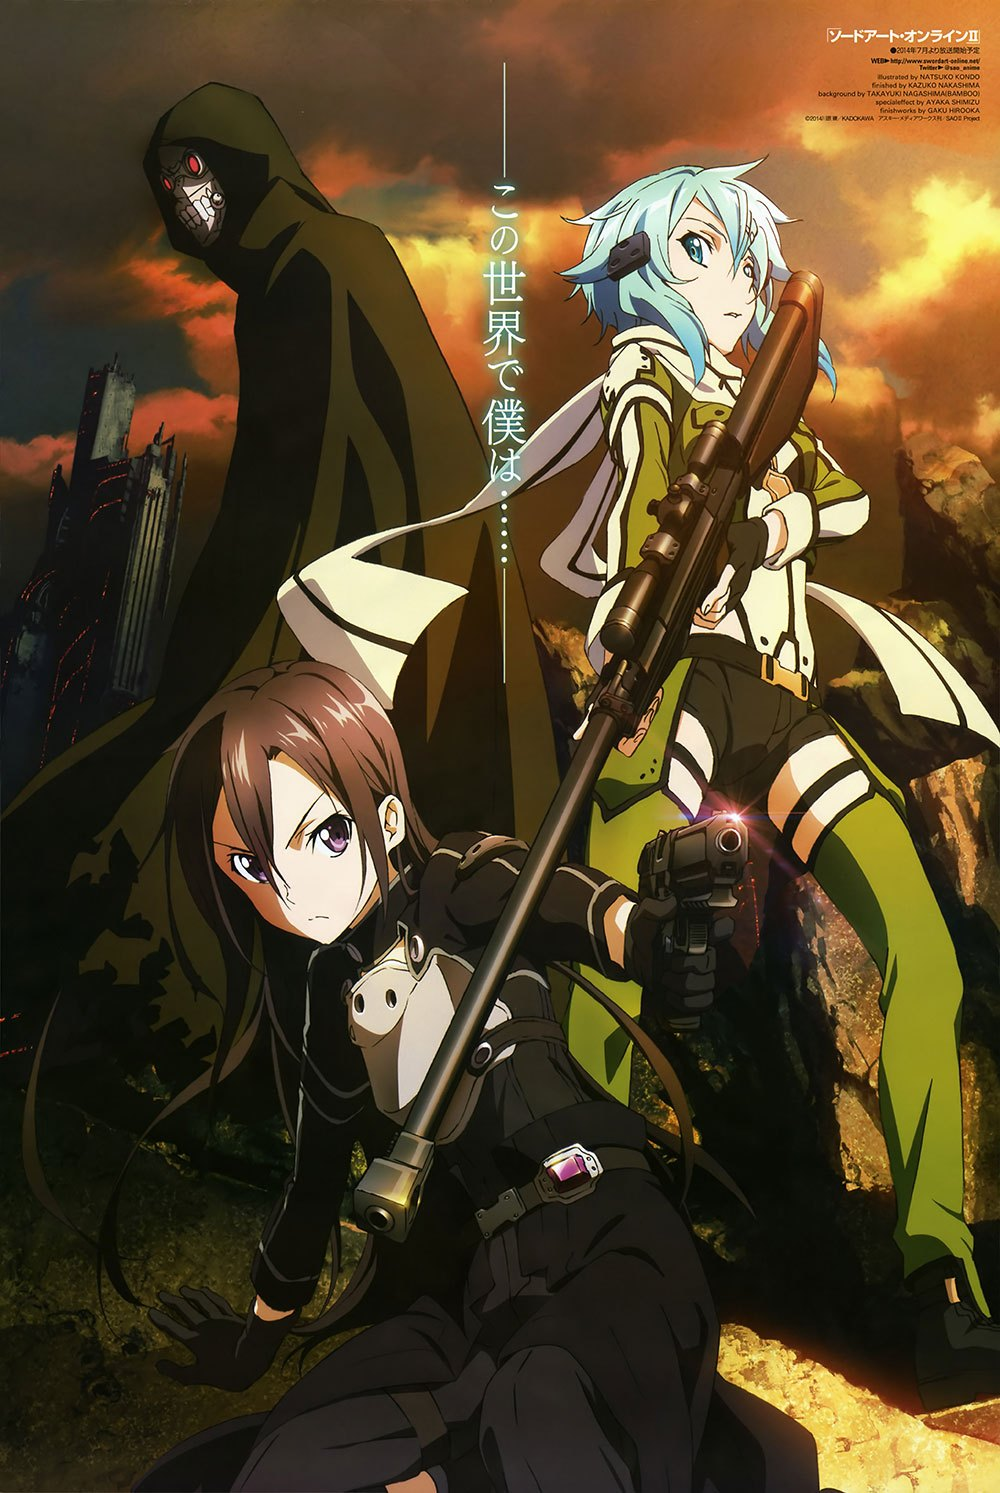 New-Sword-Art-Online-Season-2-Visual-Image